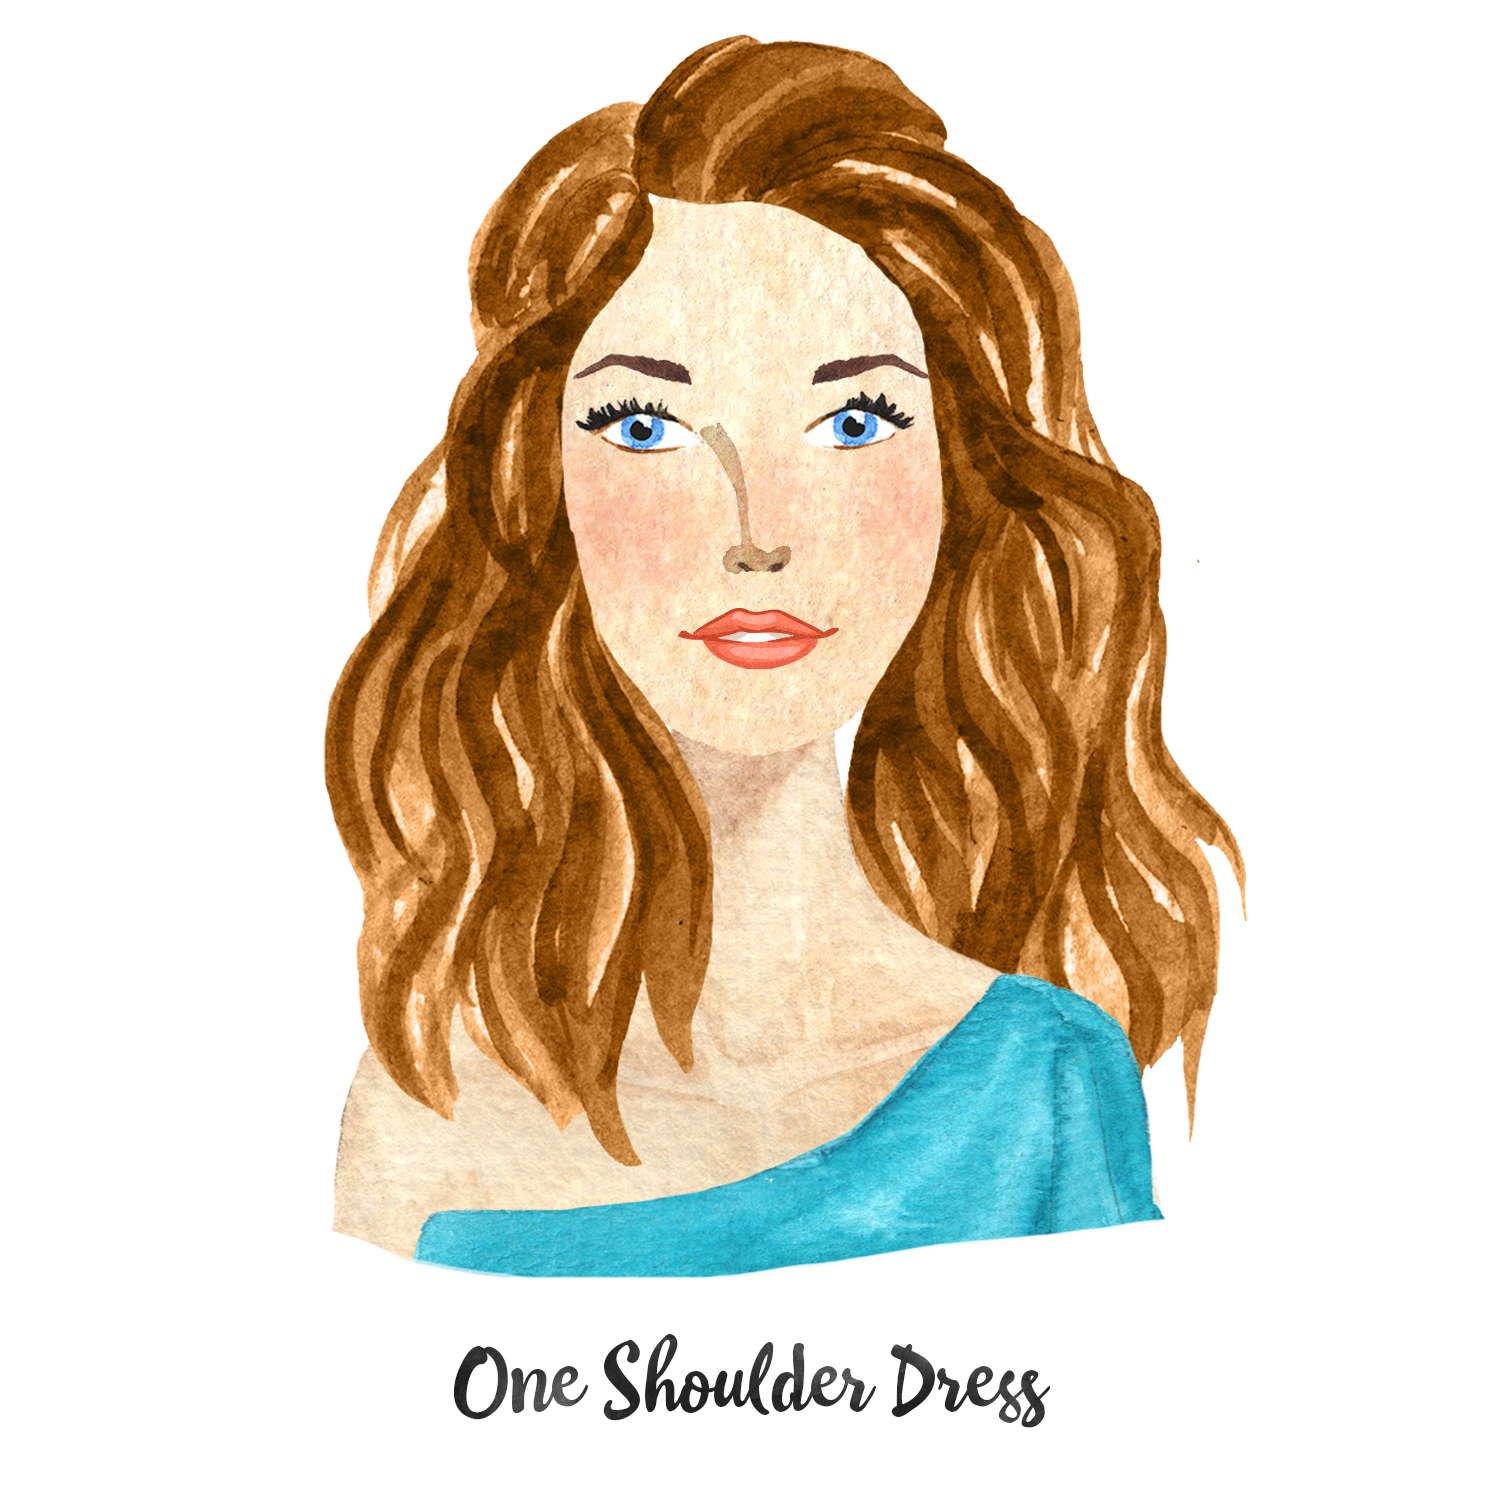 One Shoulder Dress.jpg